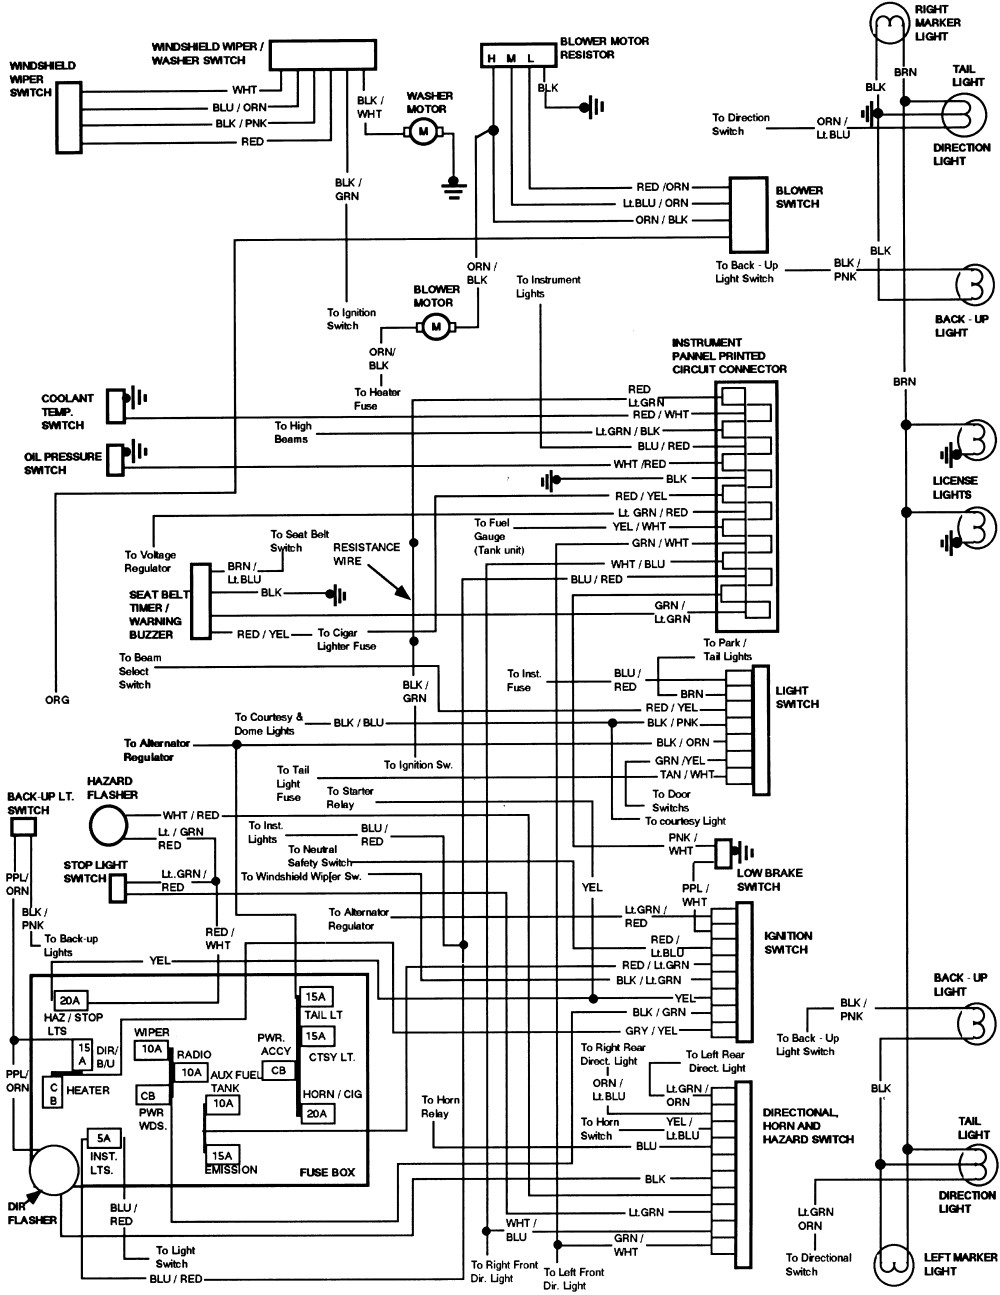 Wiring Harness Diagram For 1987 Ford F 150 - Wiring Diagrams Hubs - Ford Wiring Harness Diagram